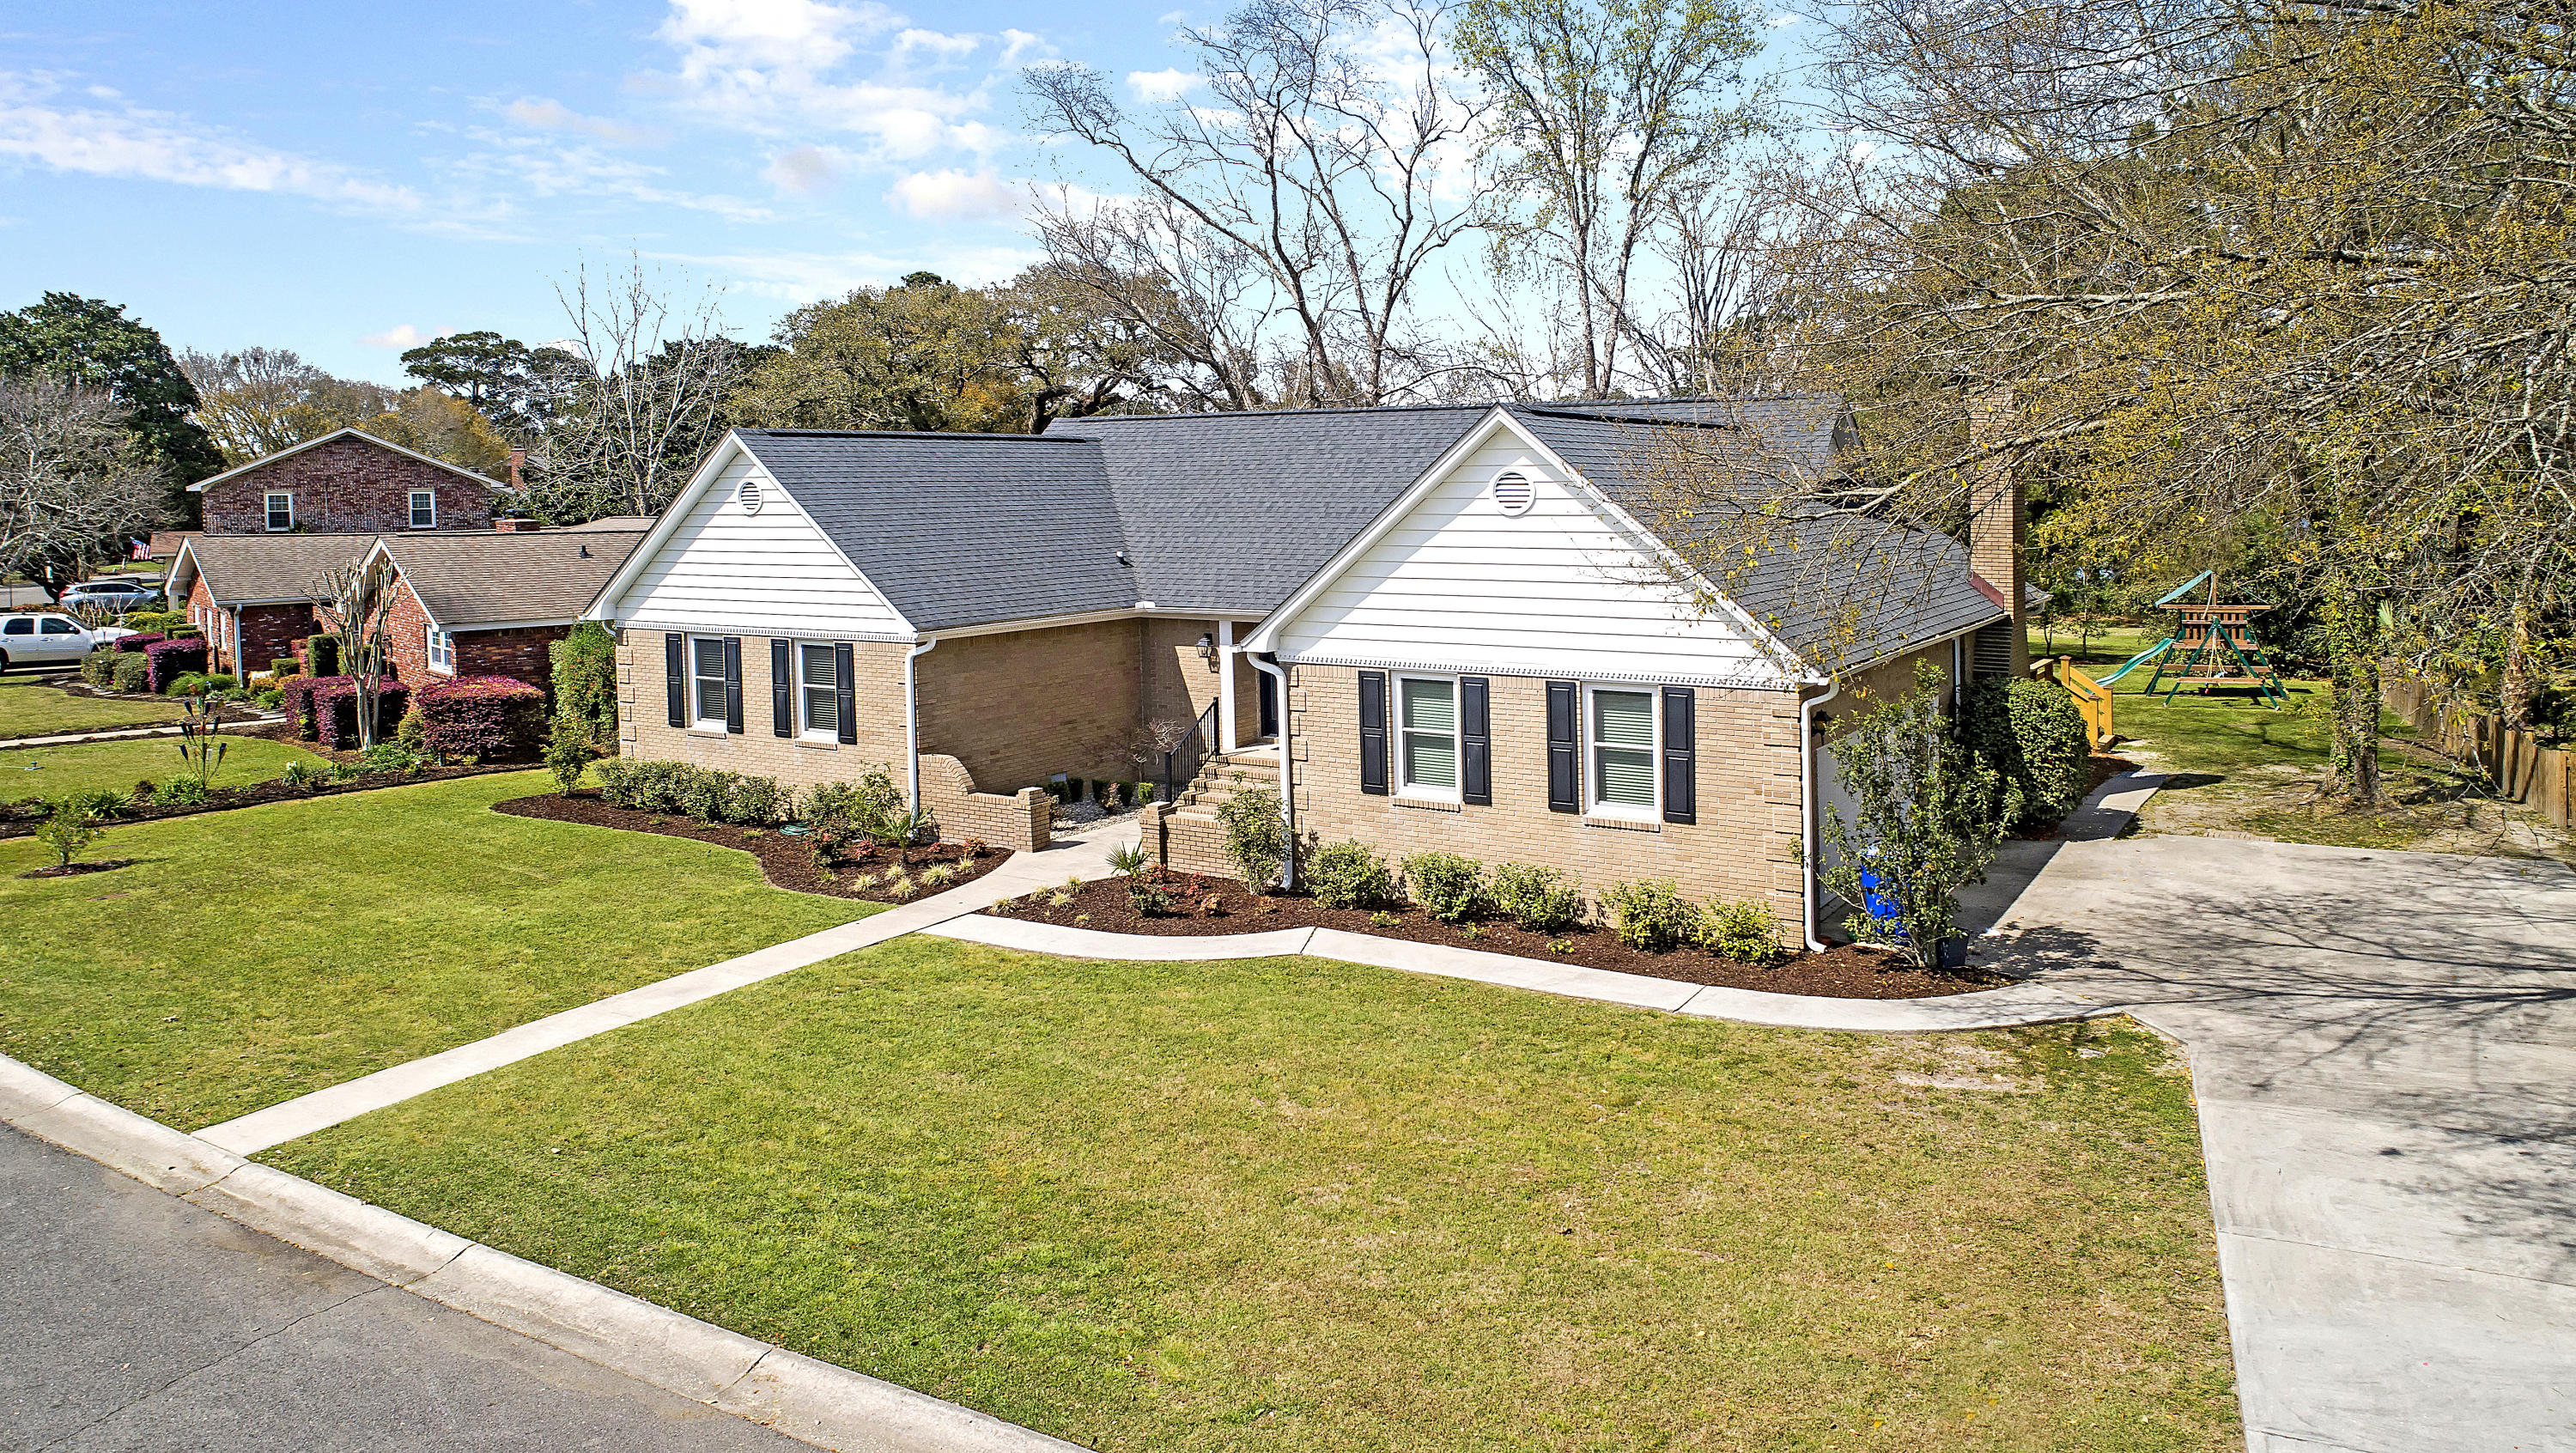 Wakendaw Lakes Homes For Sale - 1288 Barksdale, Mount Pleasant, SC - 33